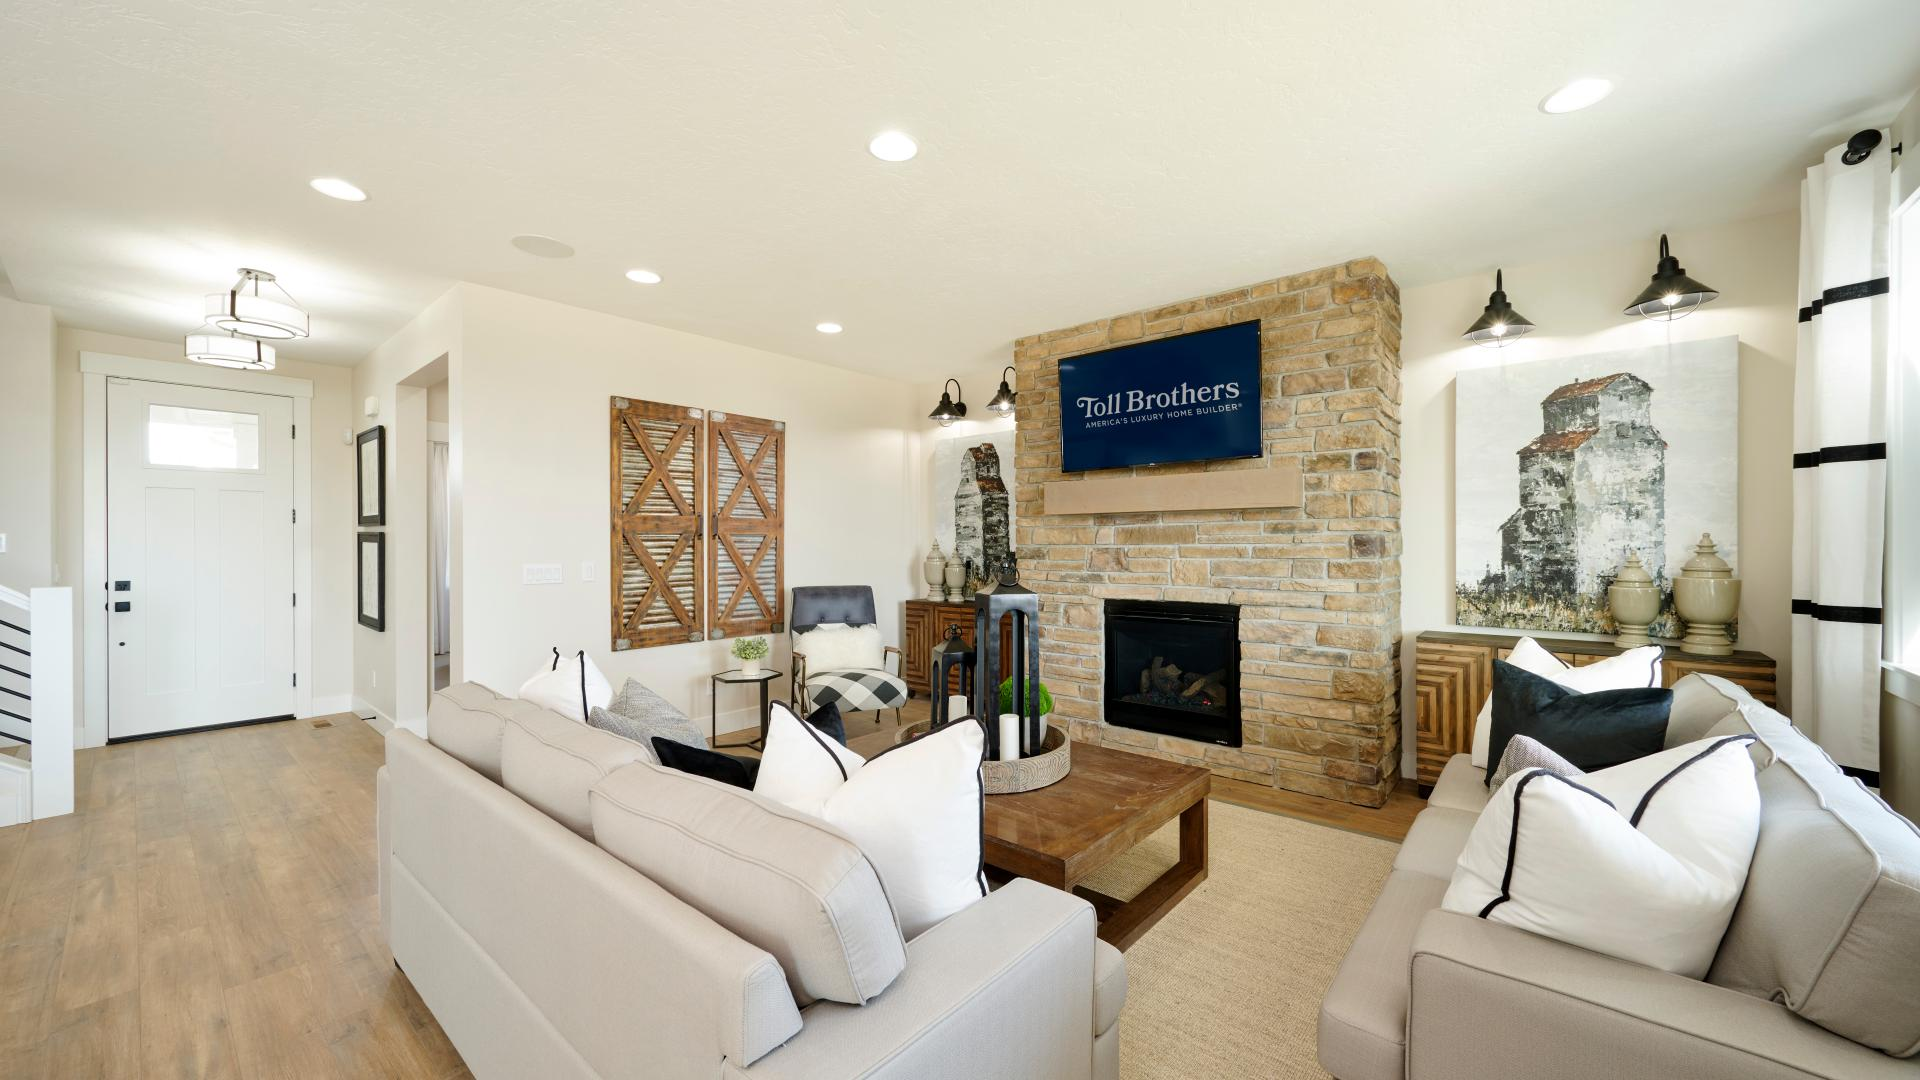 Comfortable, open living spaces